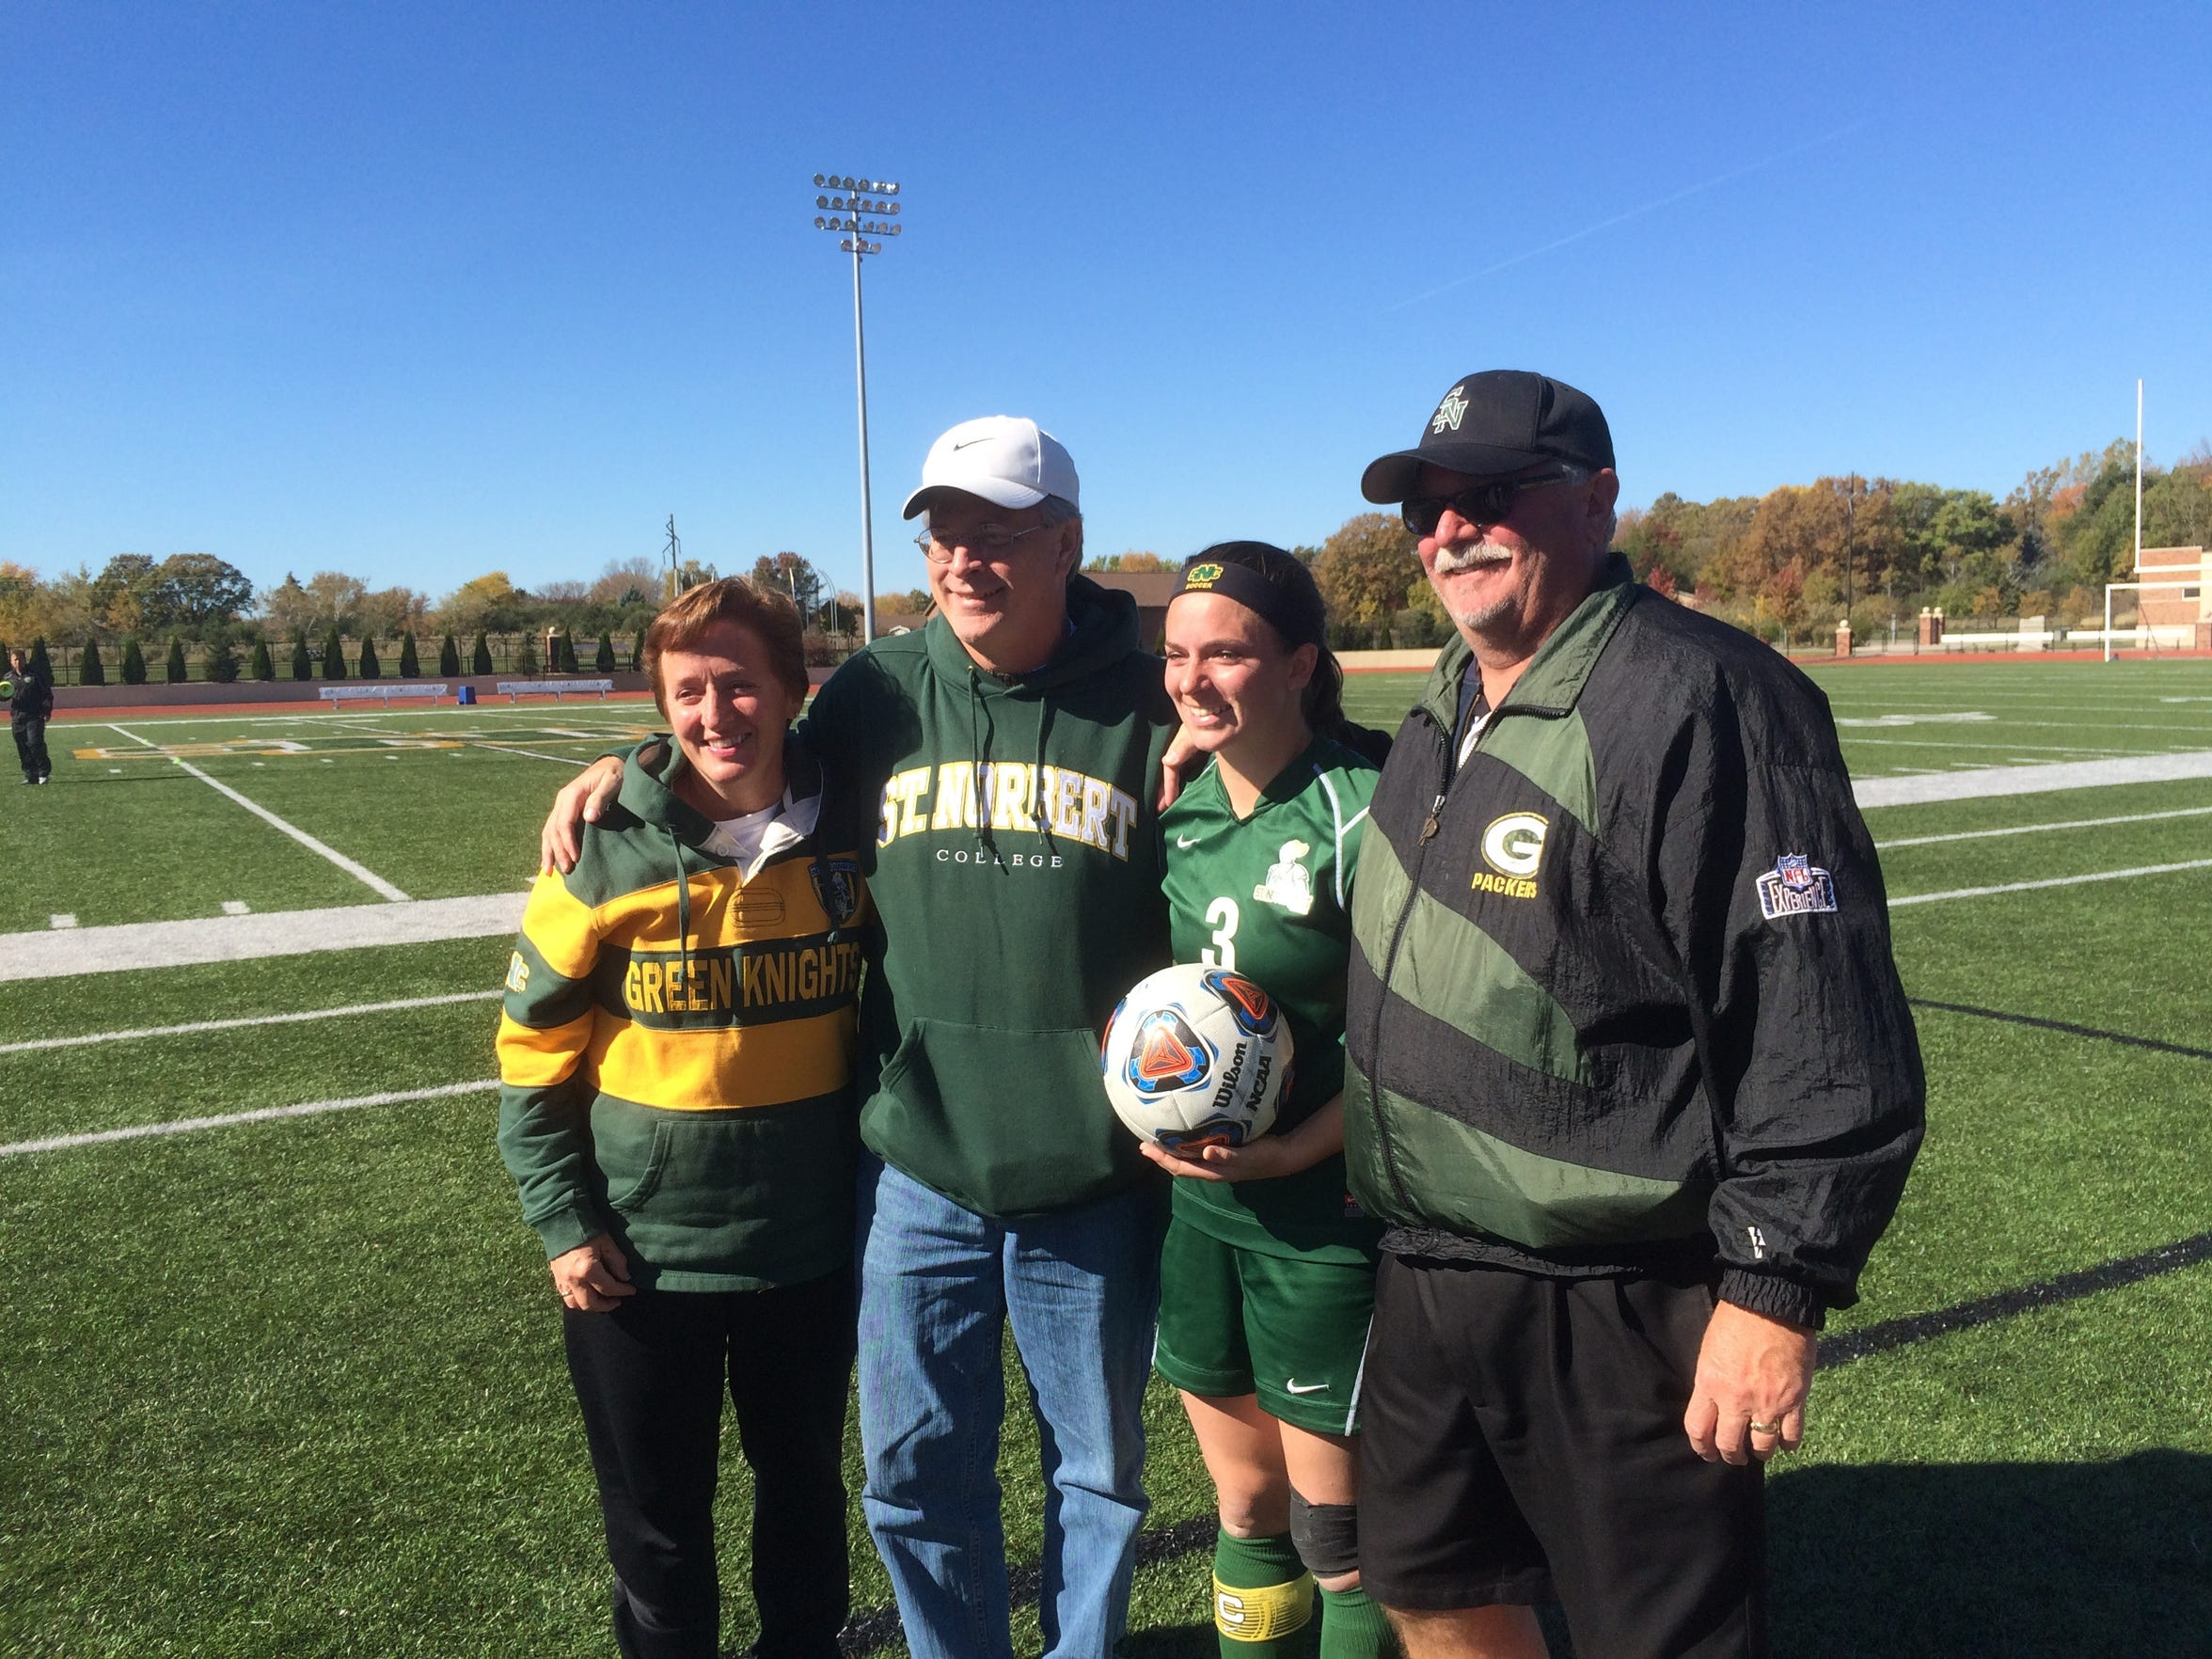 St. Norbert College senior Katie Vanden Avond receives the game ball after tying the NCAA Division III career goals record.